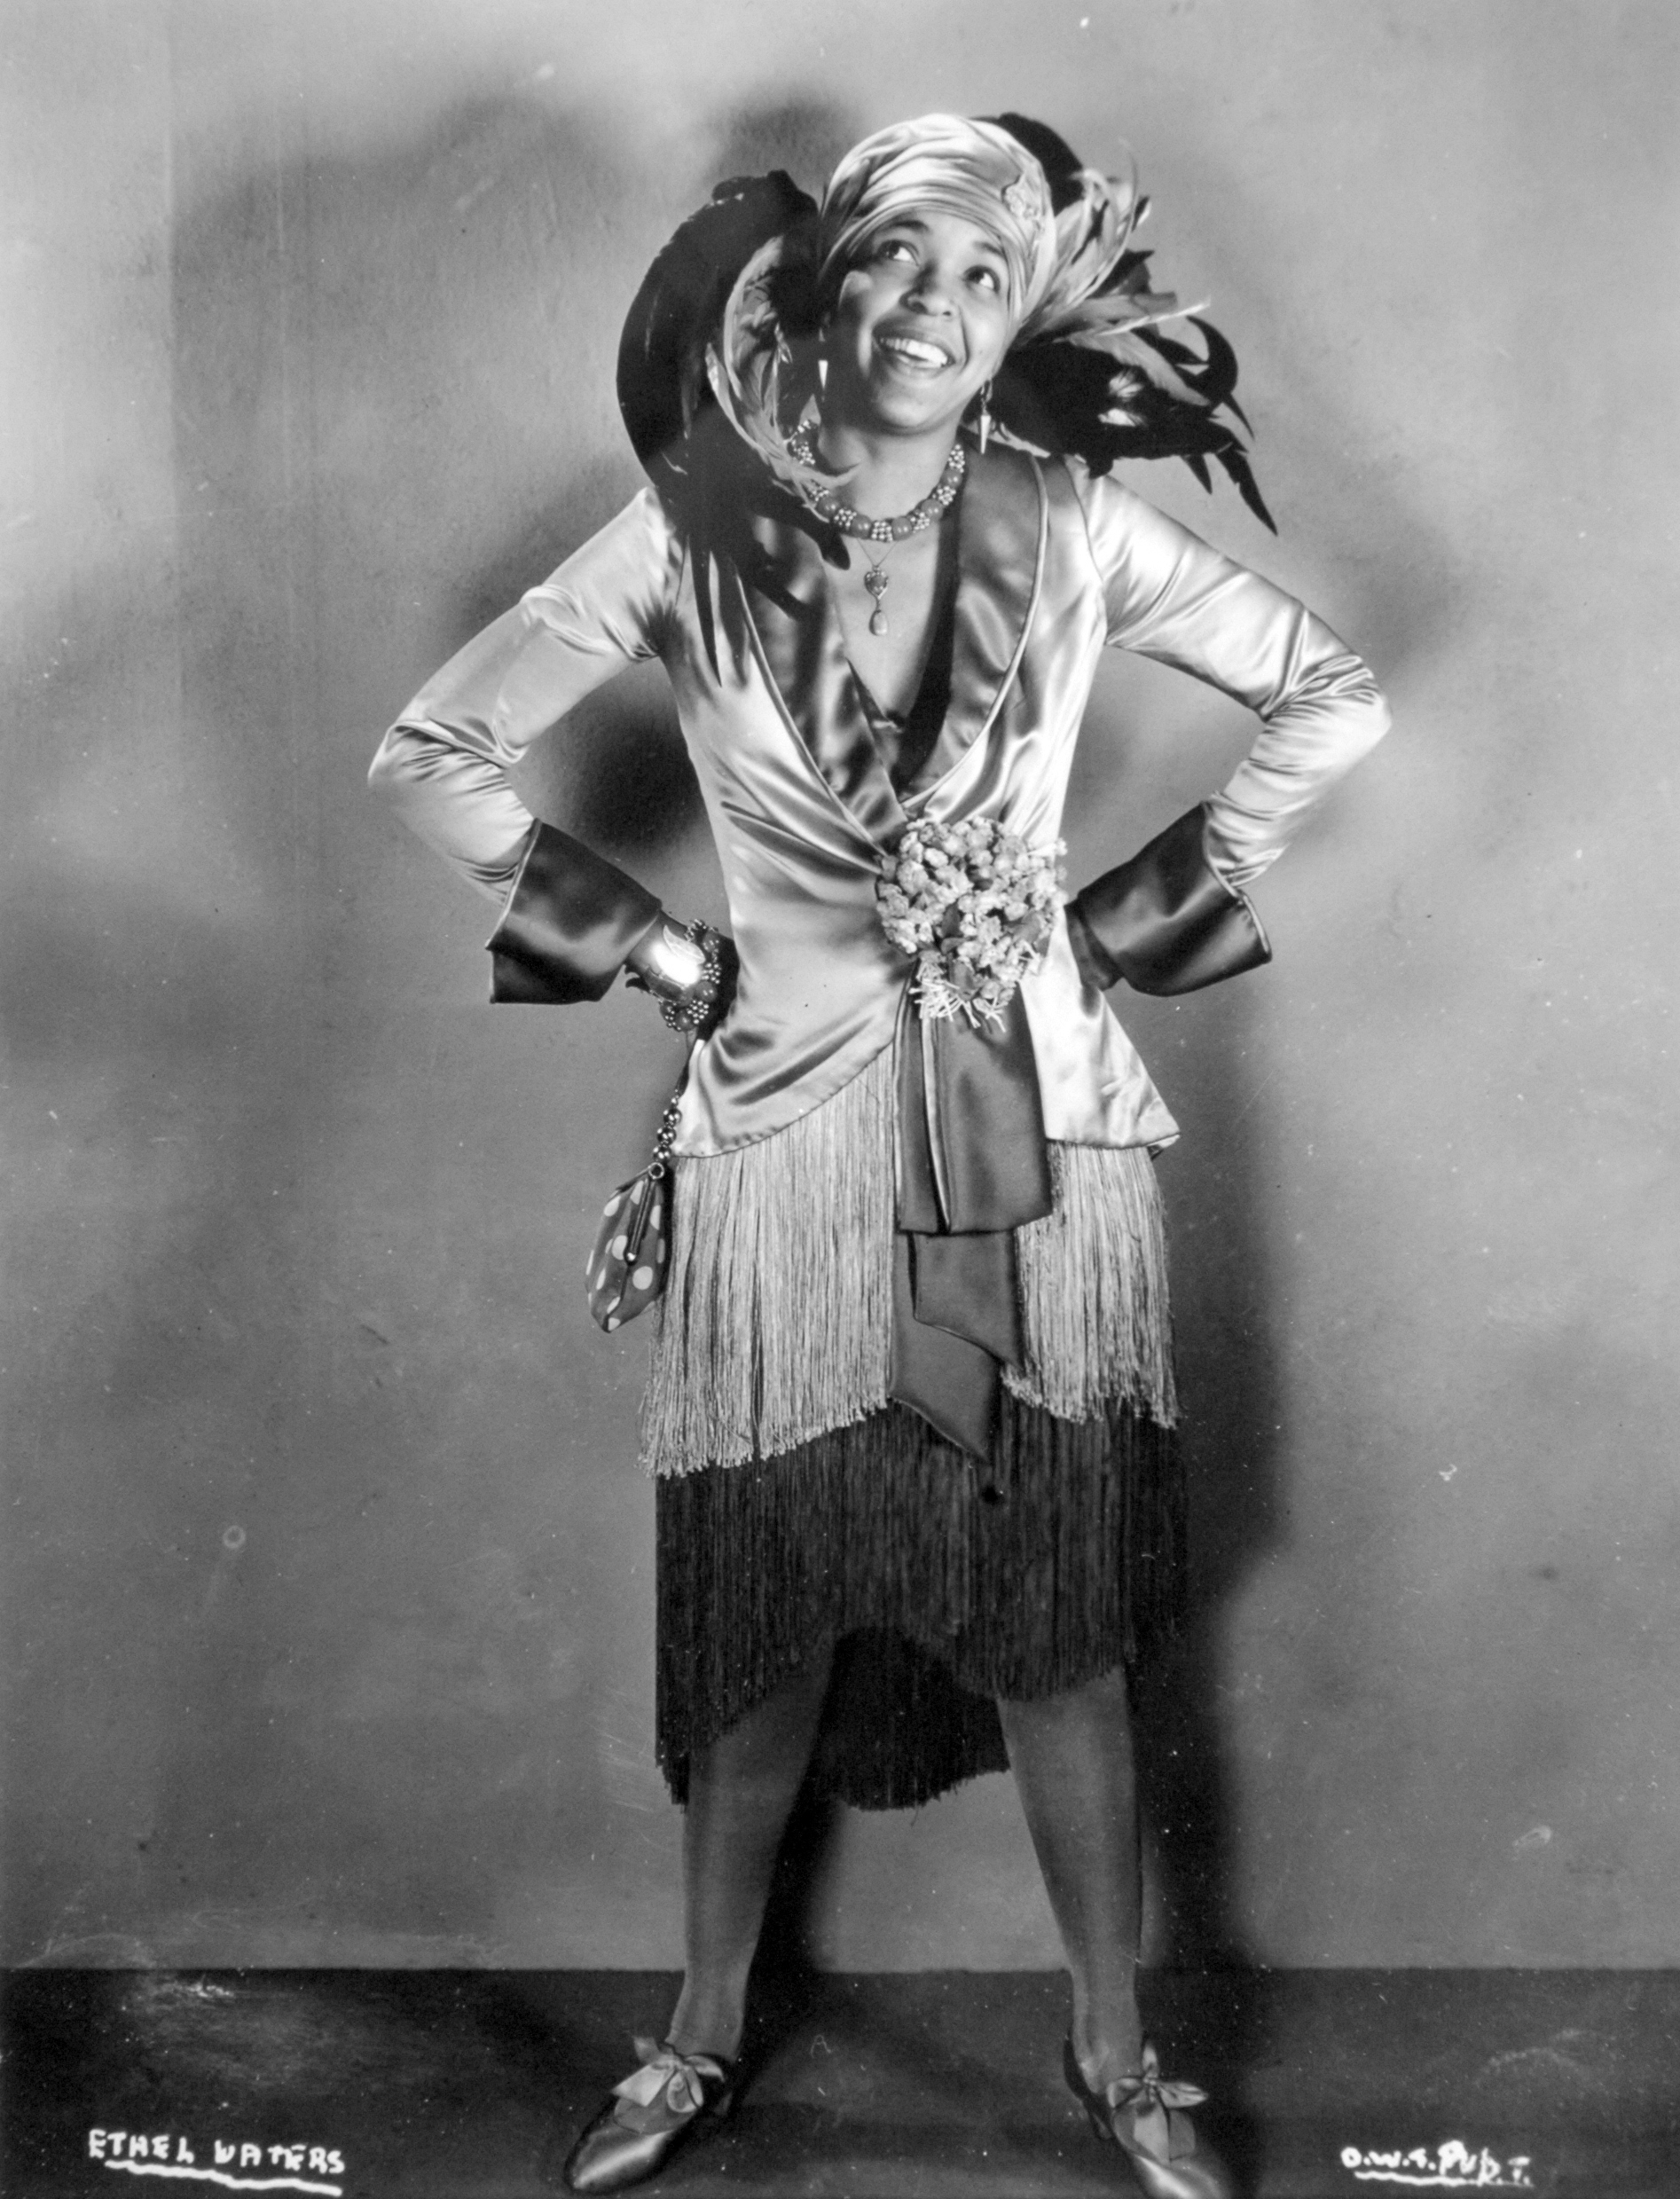 Ethel Waters Ethel Waters new pics